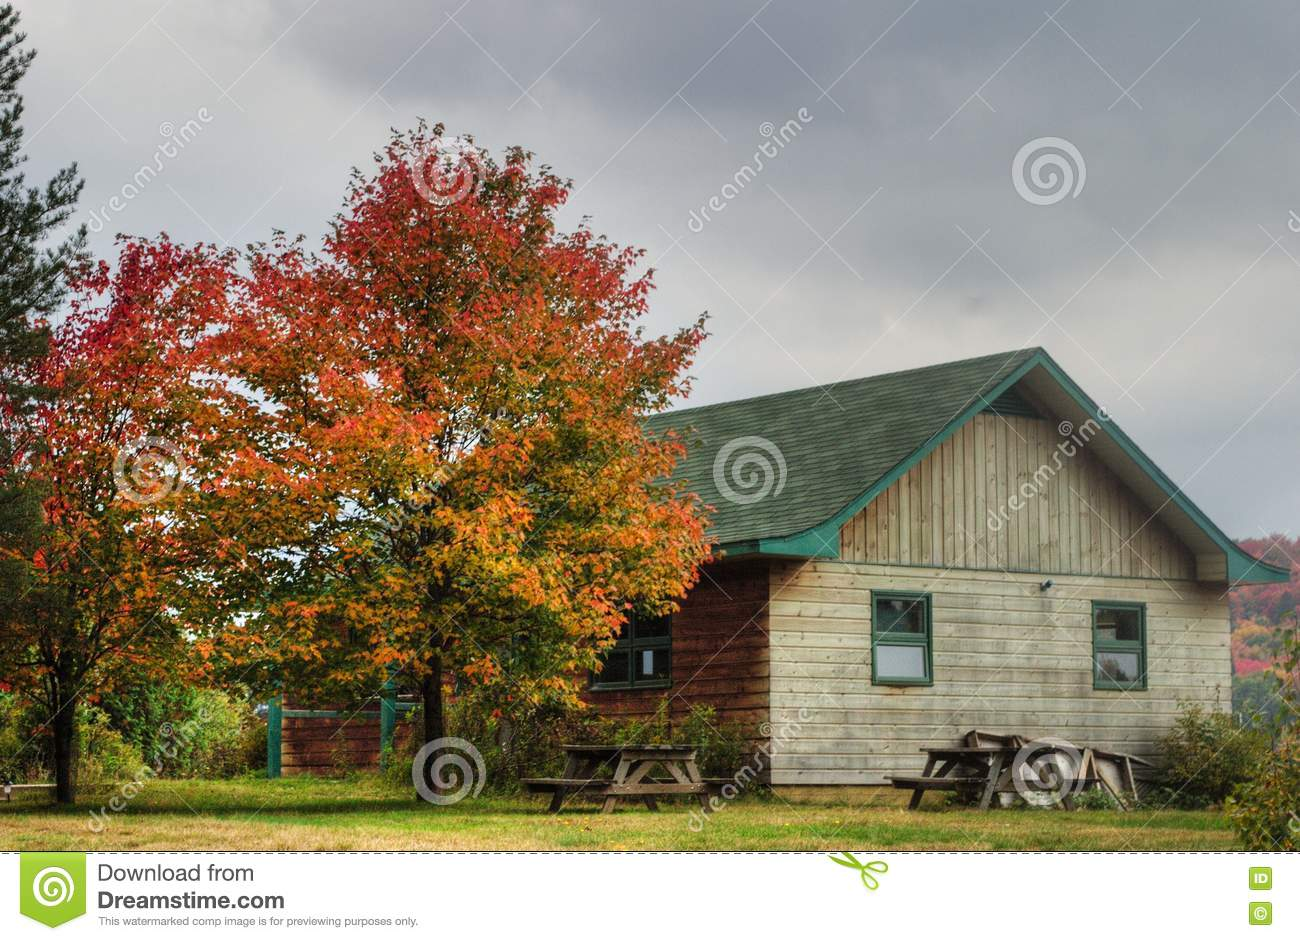 Wooden hut in Fall